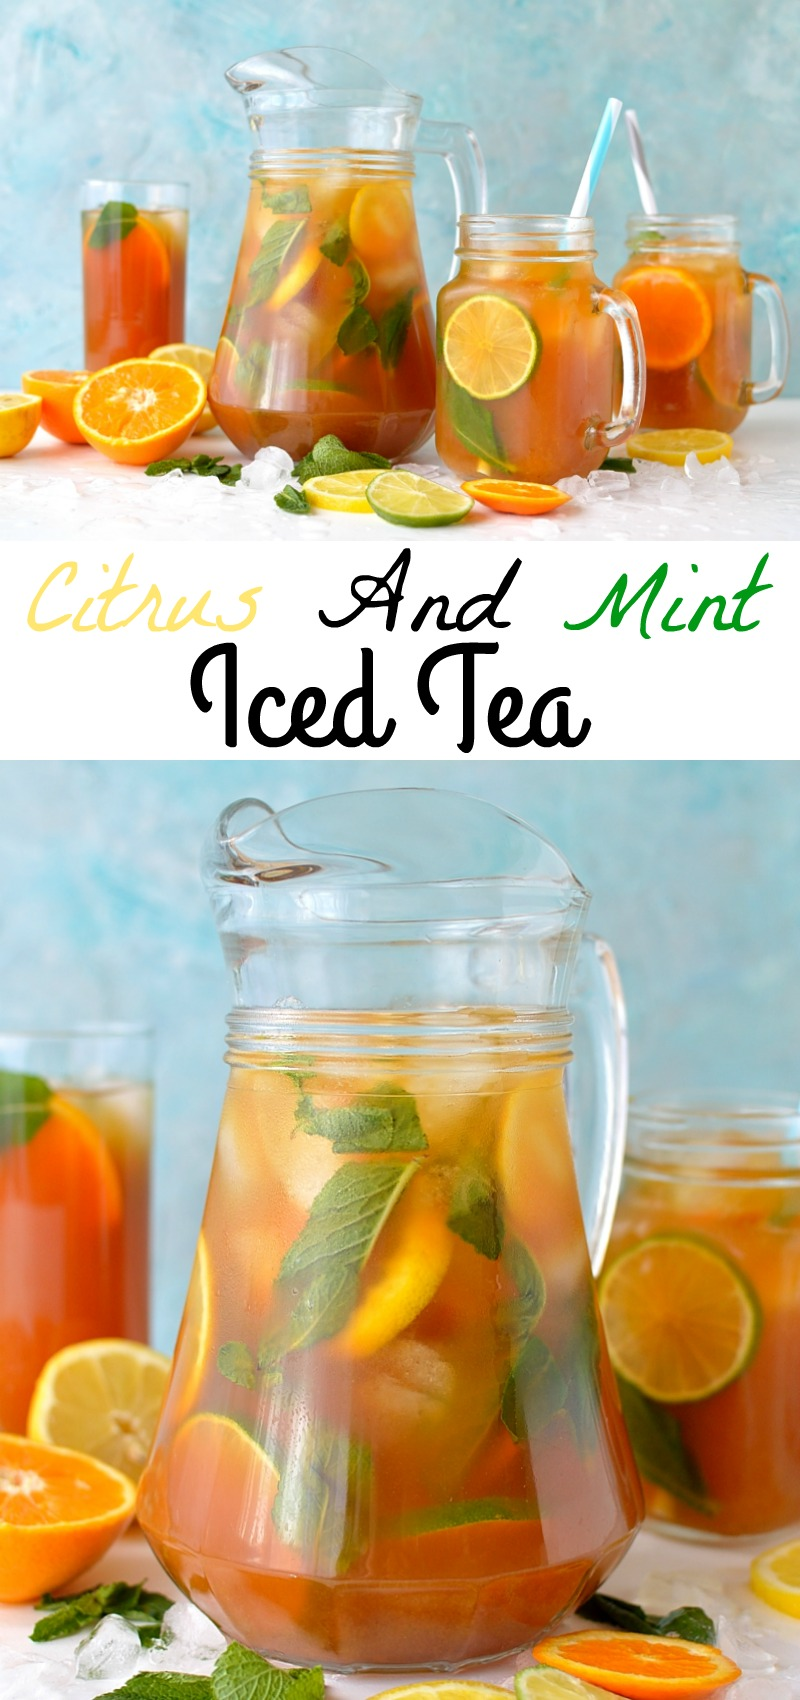 Citrus and mint iced tea pinterest